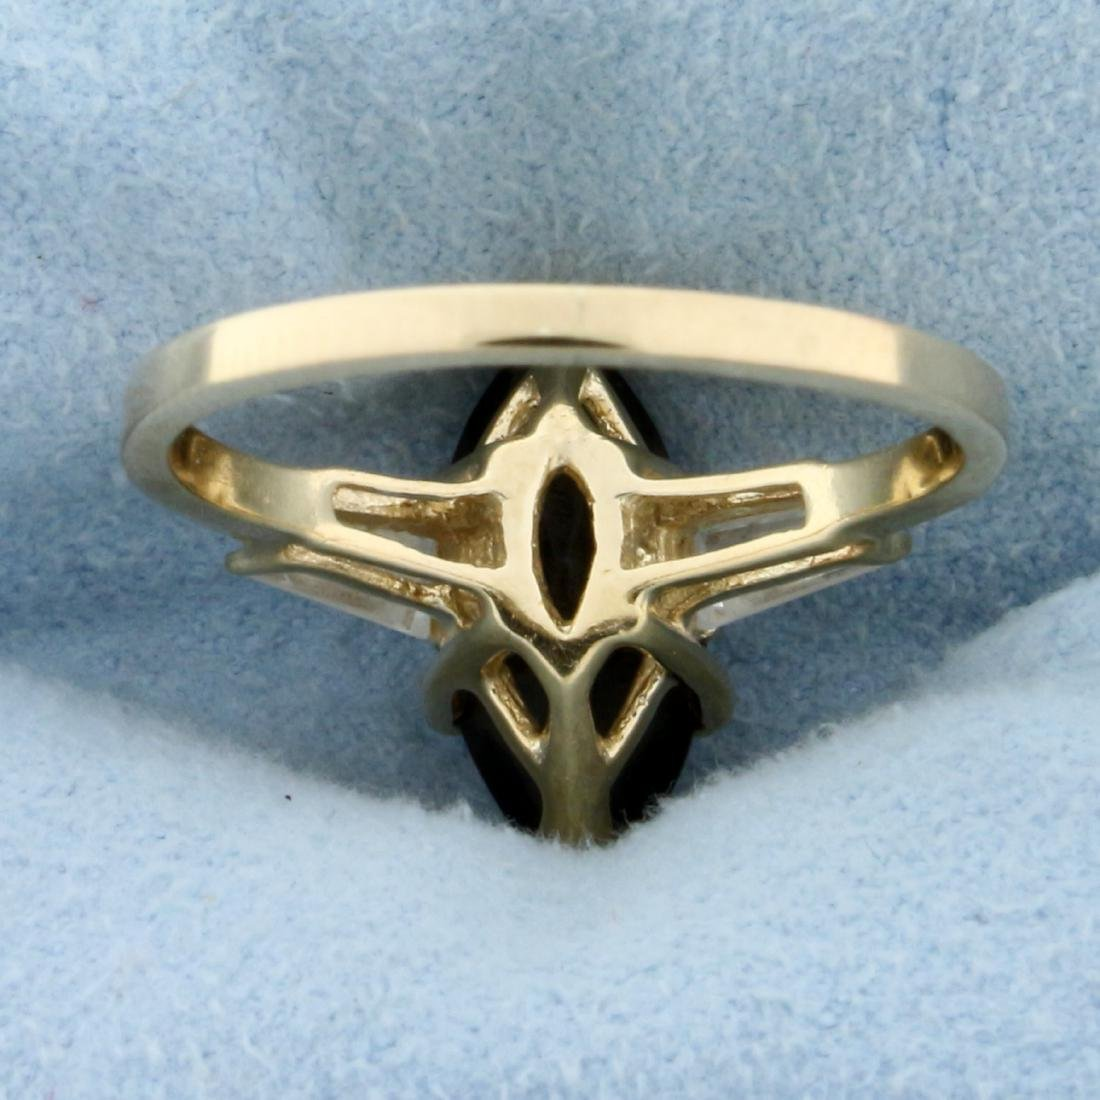 Smoky Topaz and CZ Ring in 14K Yellow Gold - 4